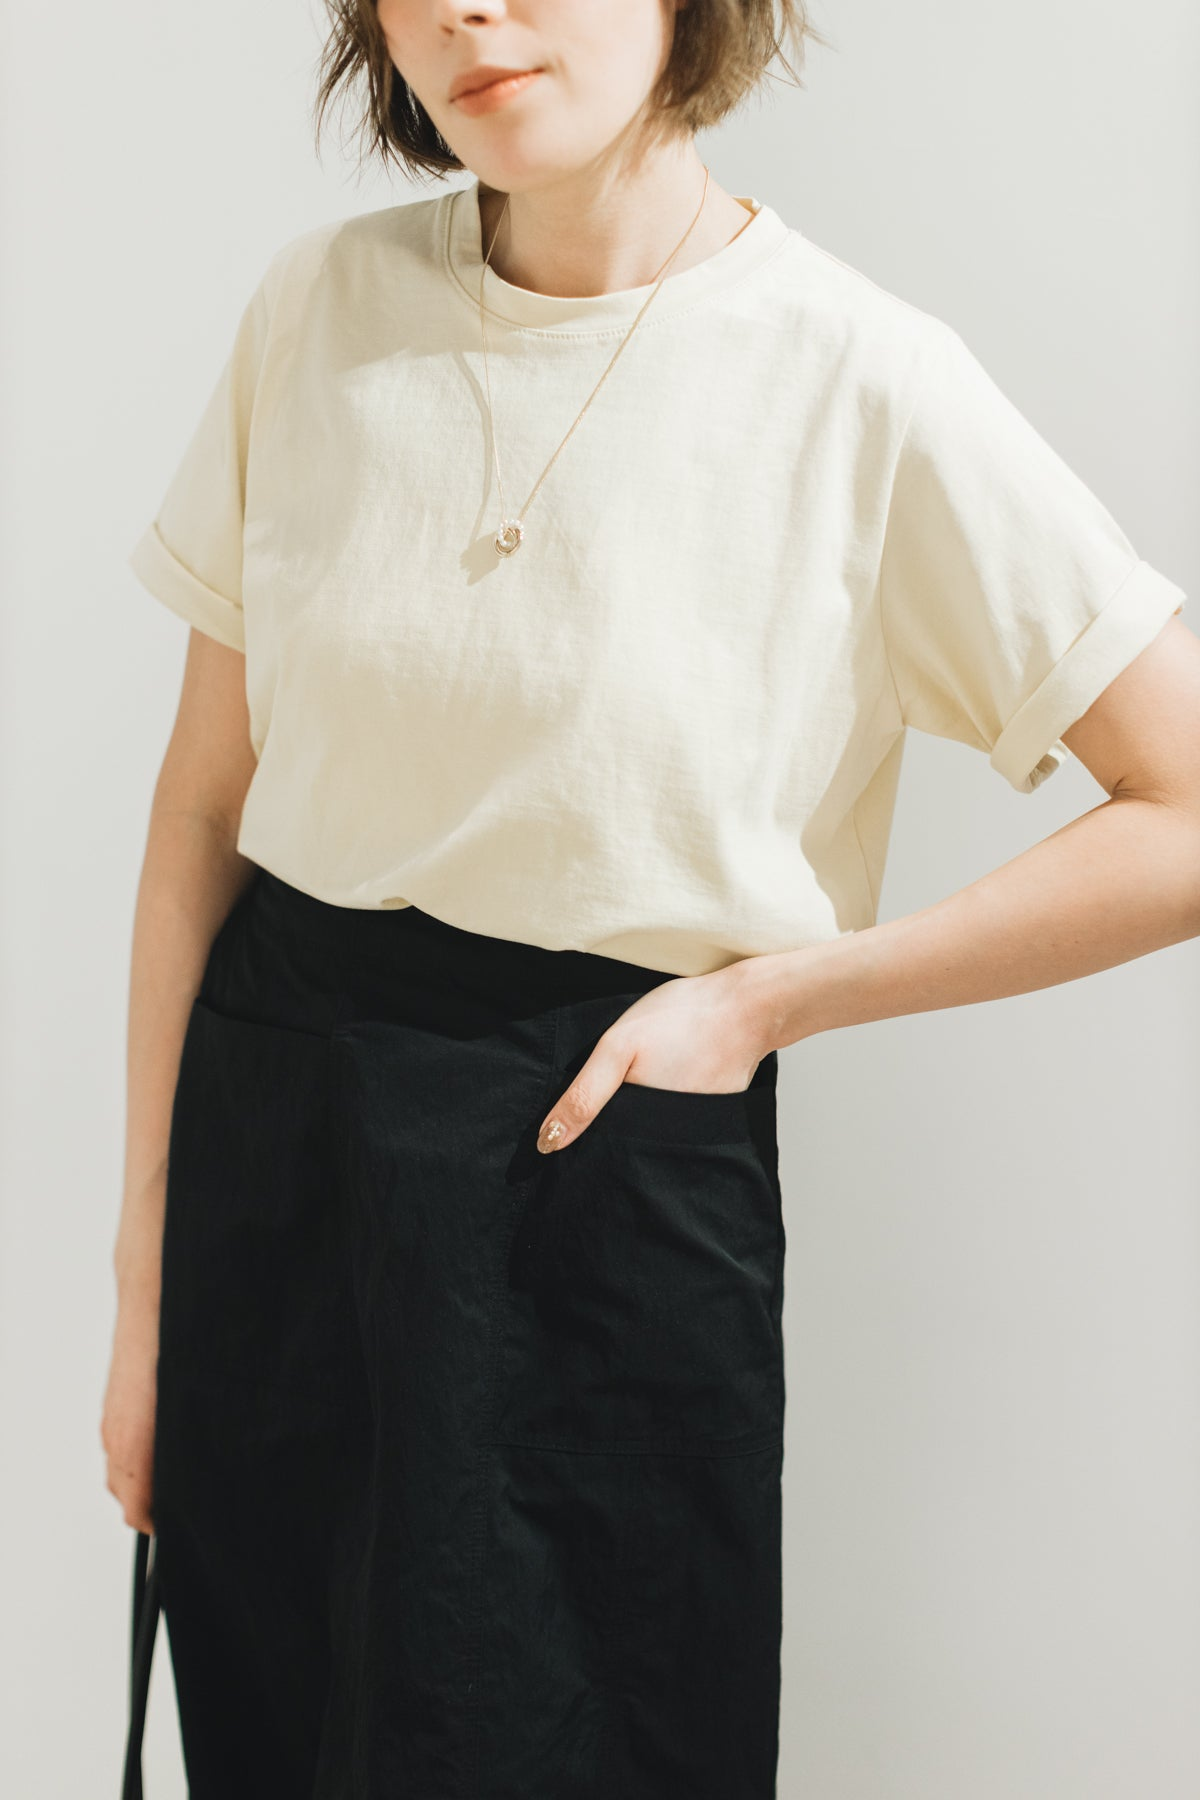 Relax Basic T-shirt/淺黃